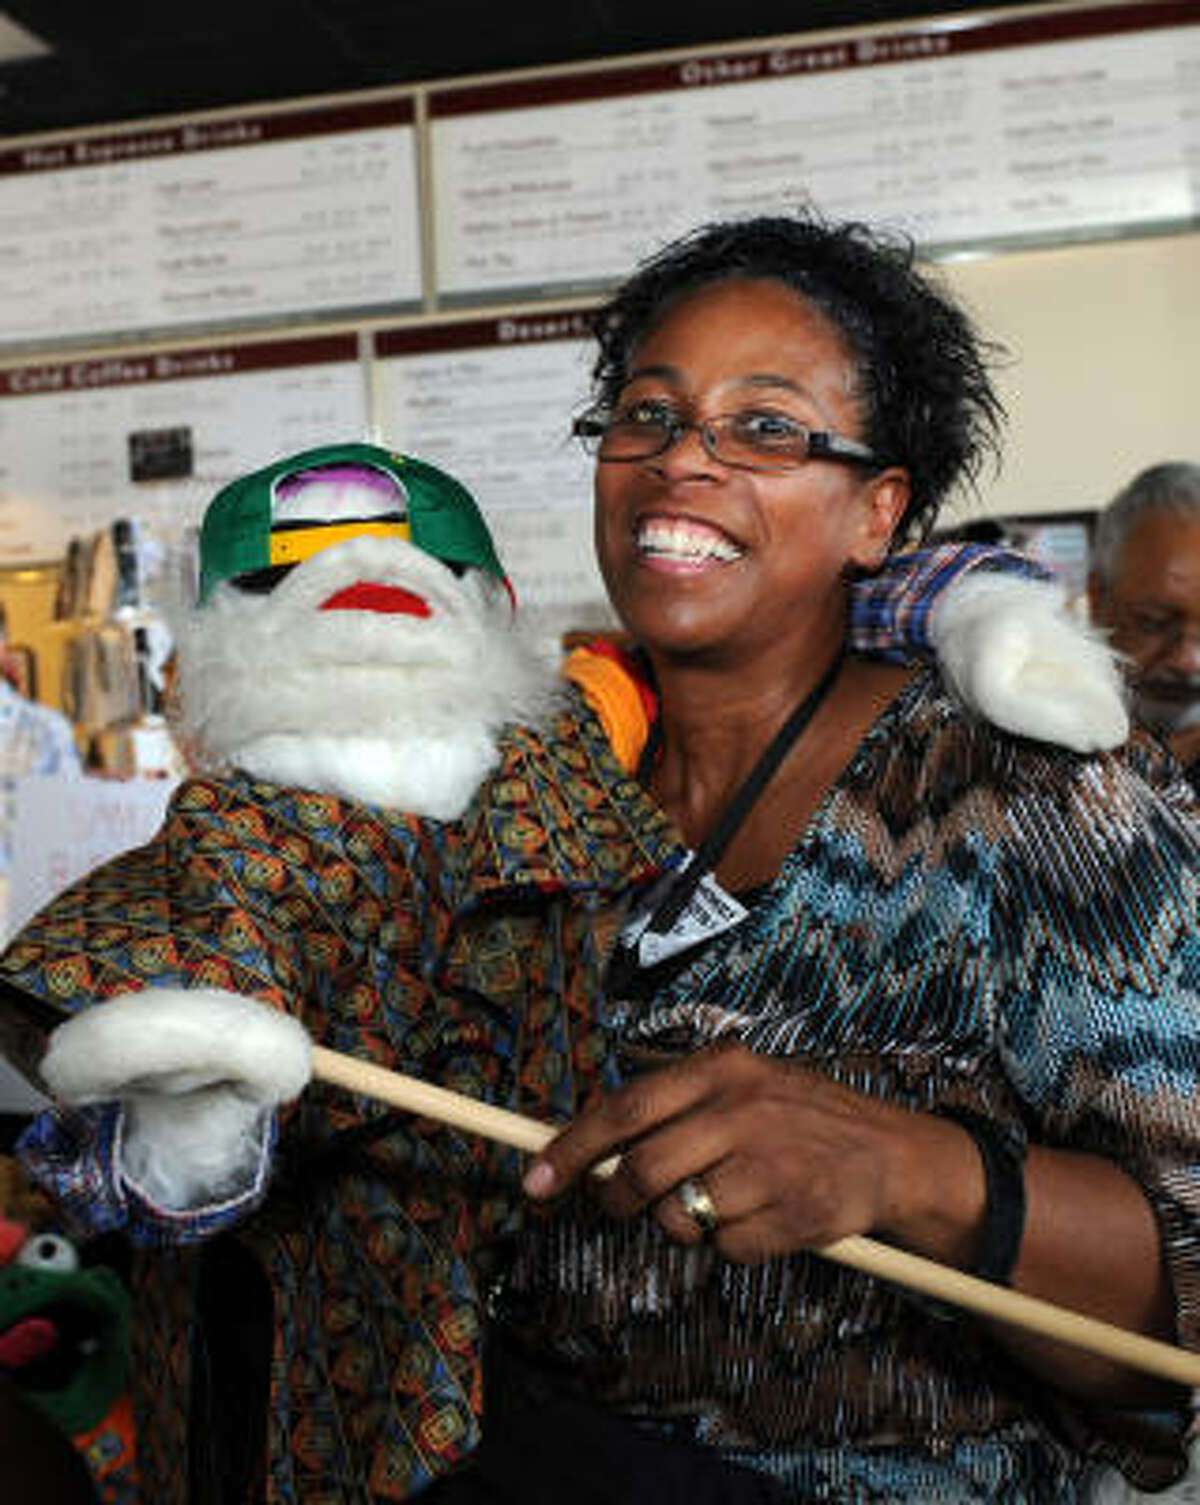 Verda Gaines shows off her puppet Mack at the health fair.